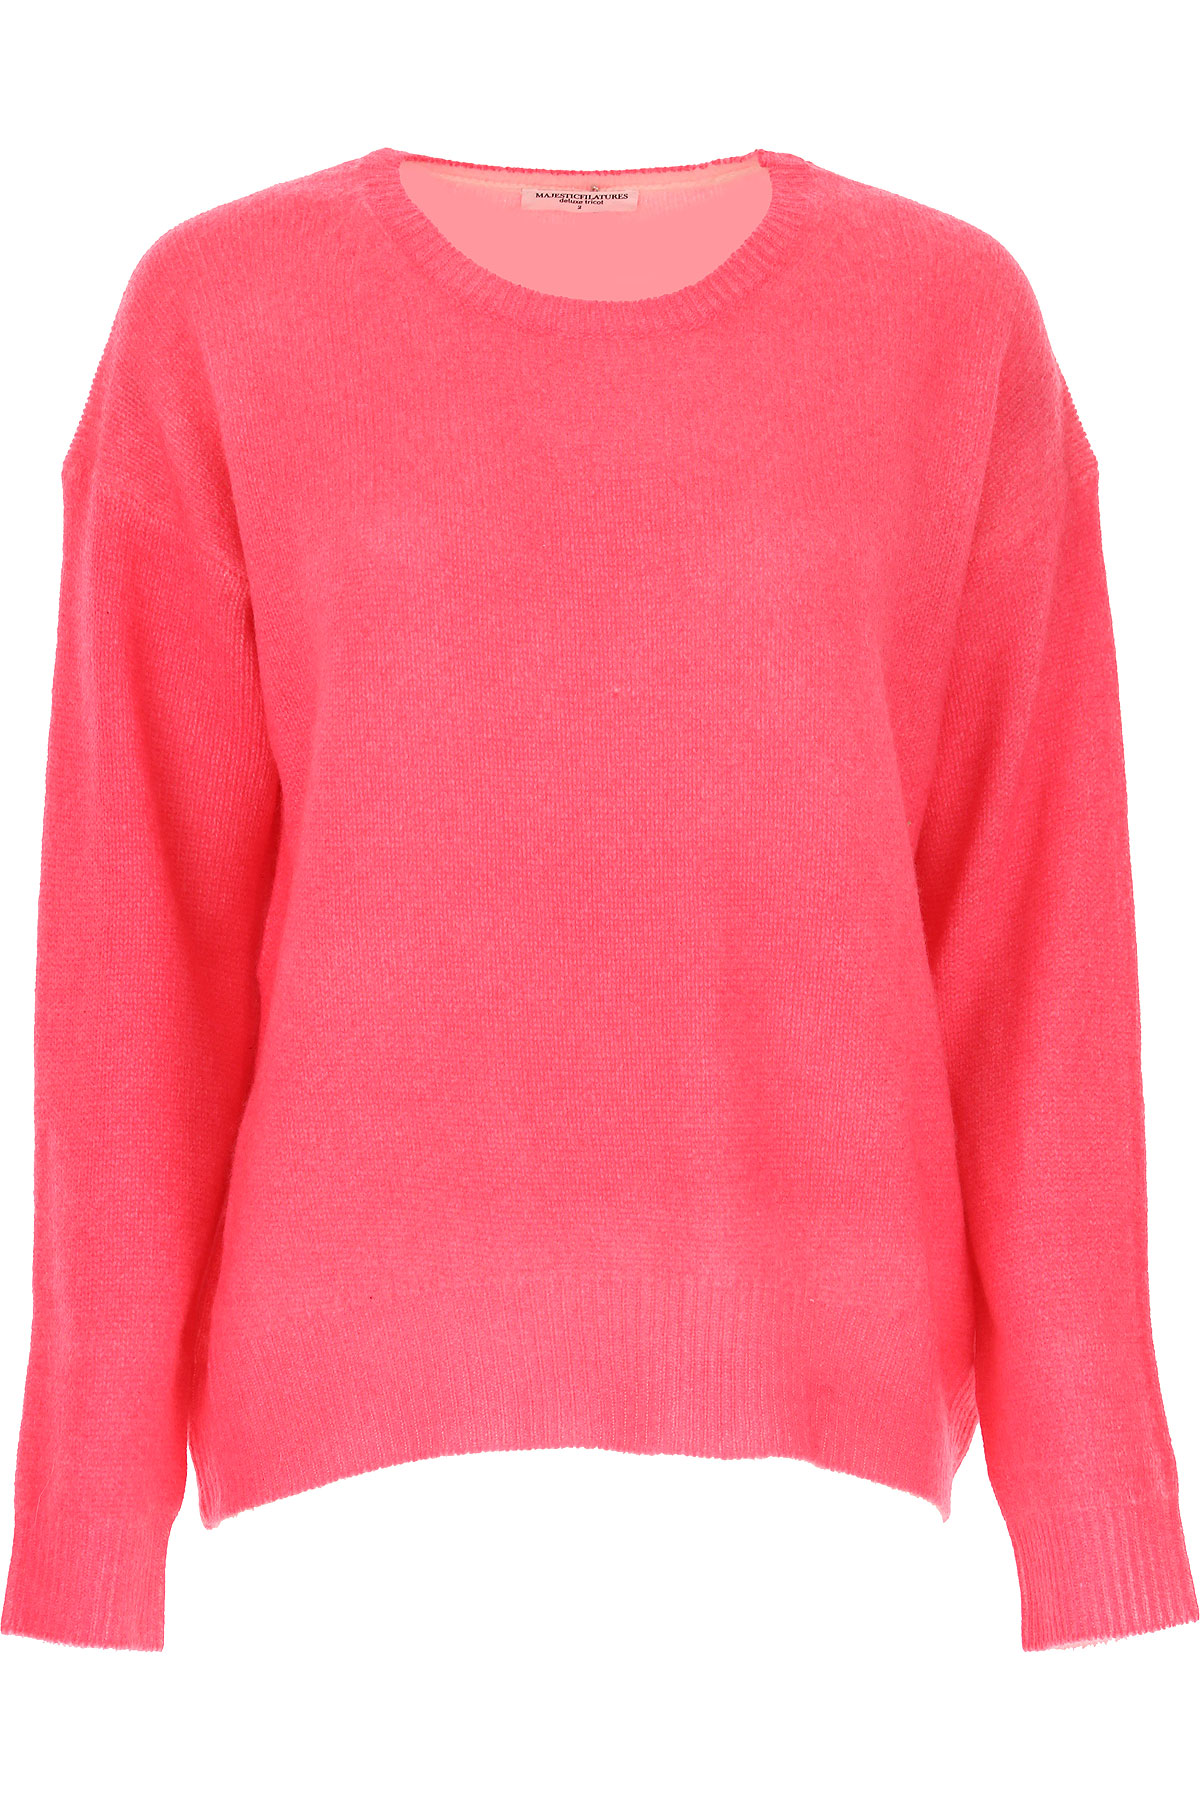 Image of Majestic Filatures Sweater for Women Jumper, Neon Pink, Cashmere, 2017, 4 6 8